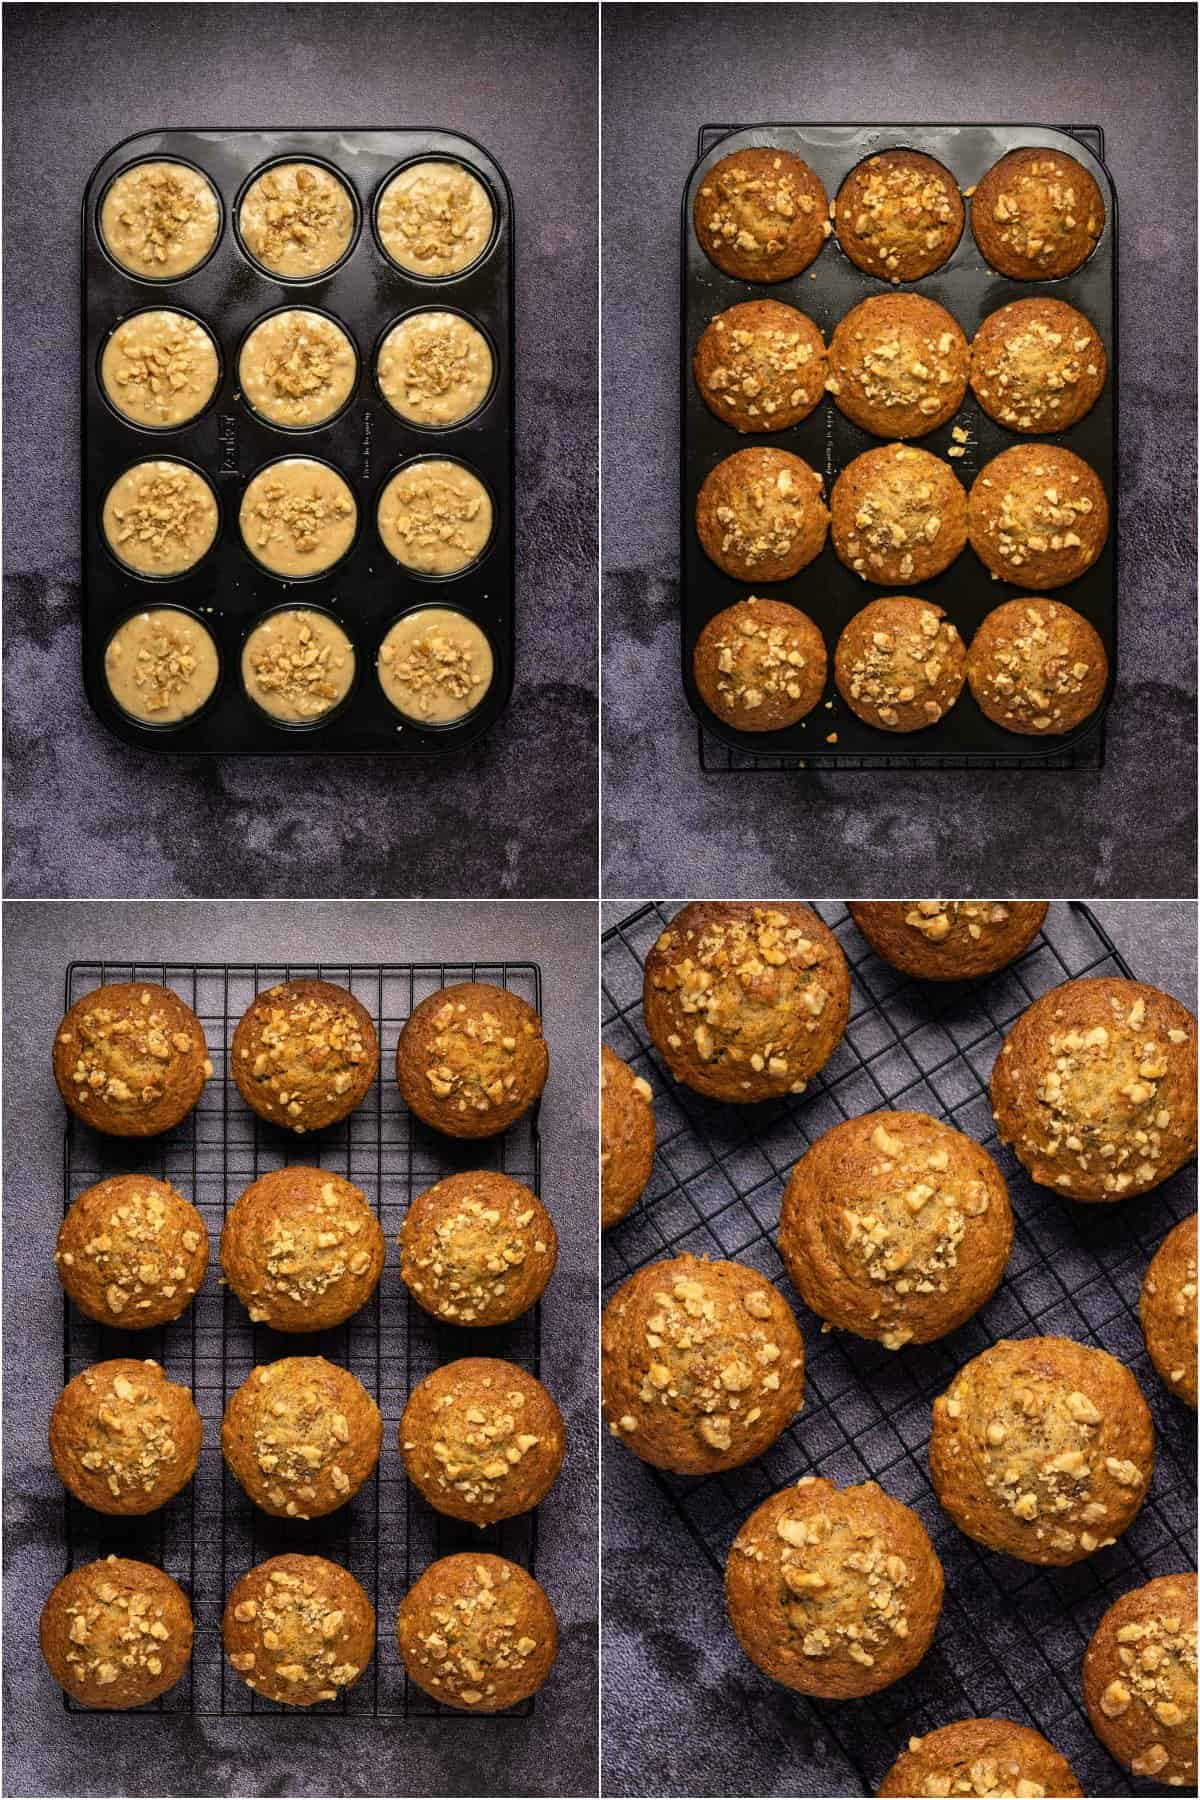 Step by step process photo collage of making banana muffins.